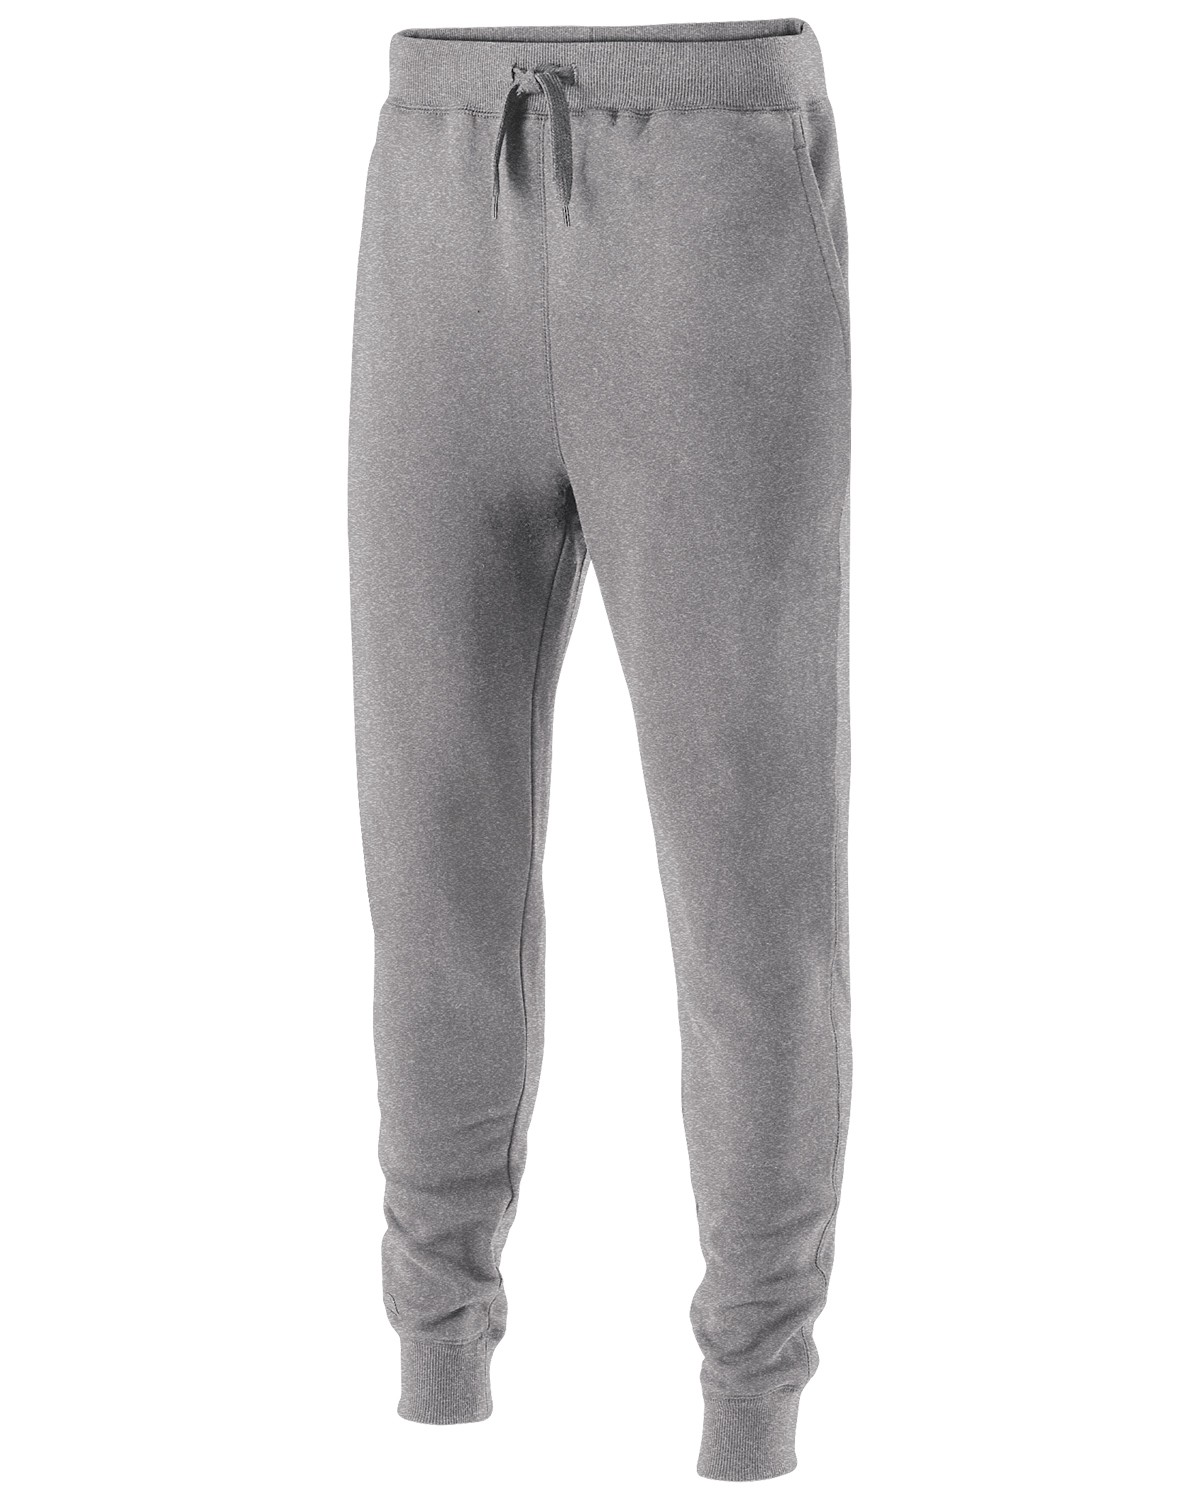 229548 Holloway CHARCOAL HEATHER